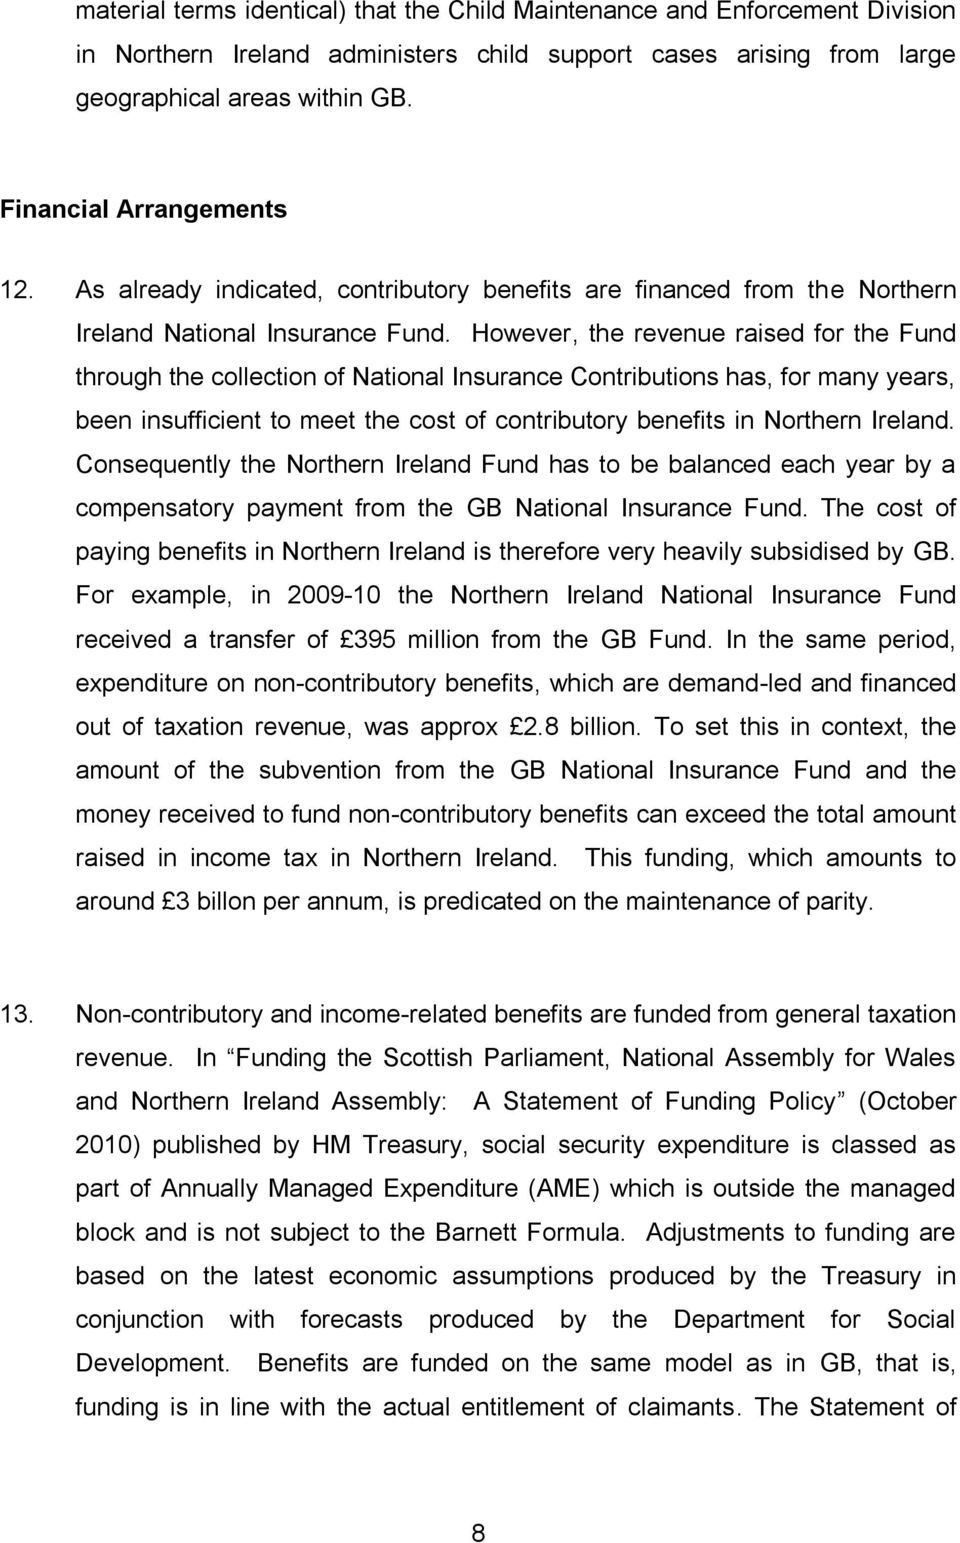 However, the revenue raised for the Fund through the collection of National Insurance Contributions has, for many years, been insufficient to meet the cost of contributory benefits in Northern